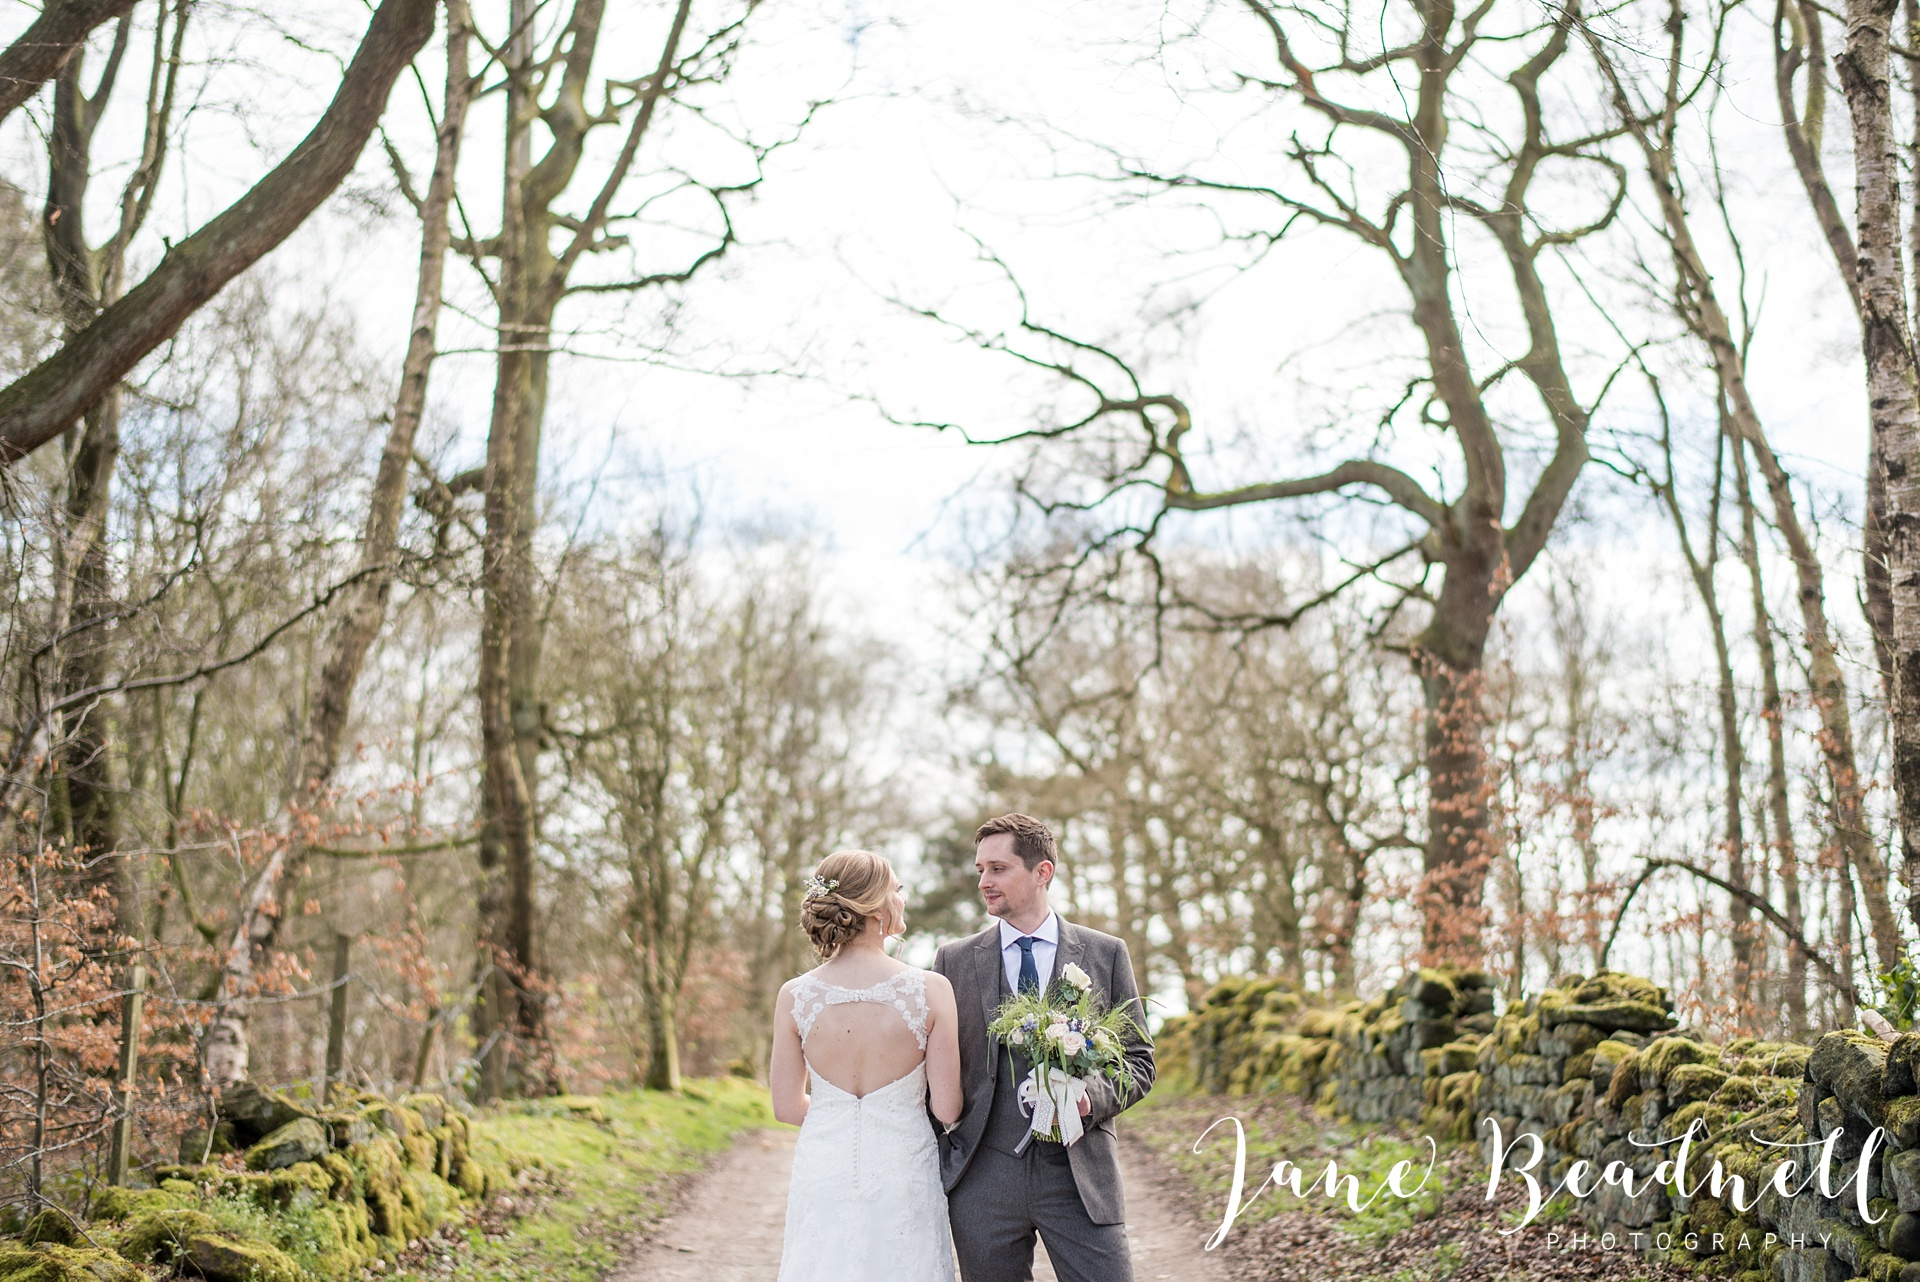 Otley Chevin Lodge wedding photography by Jane Beadnell Photography Leeds_0111